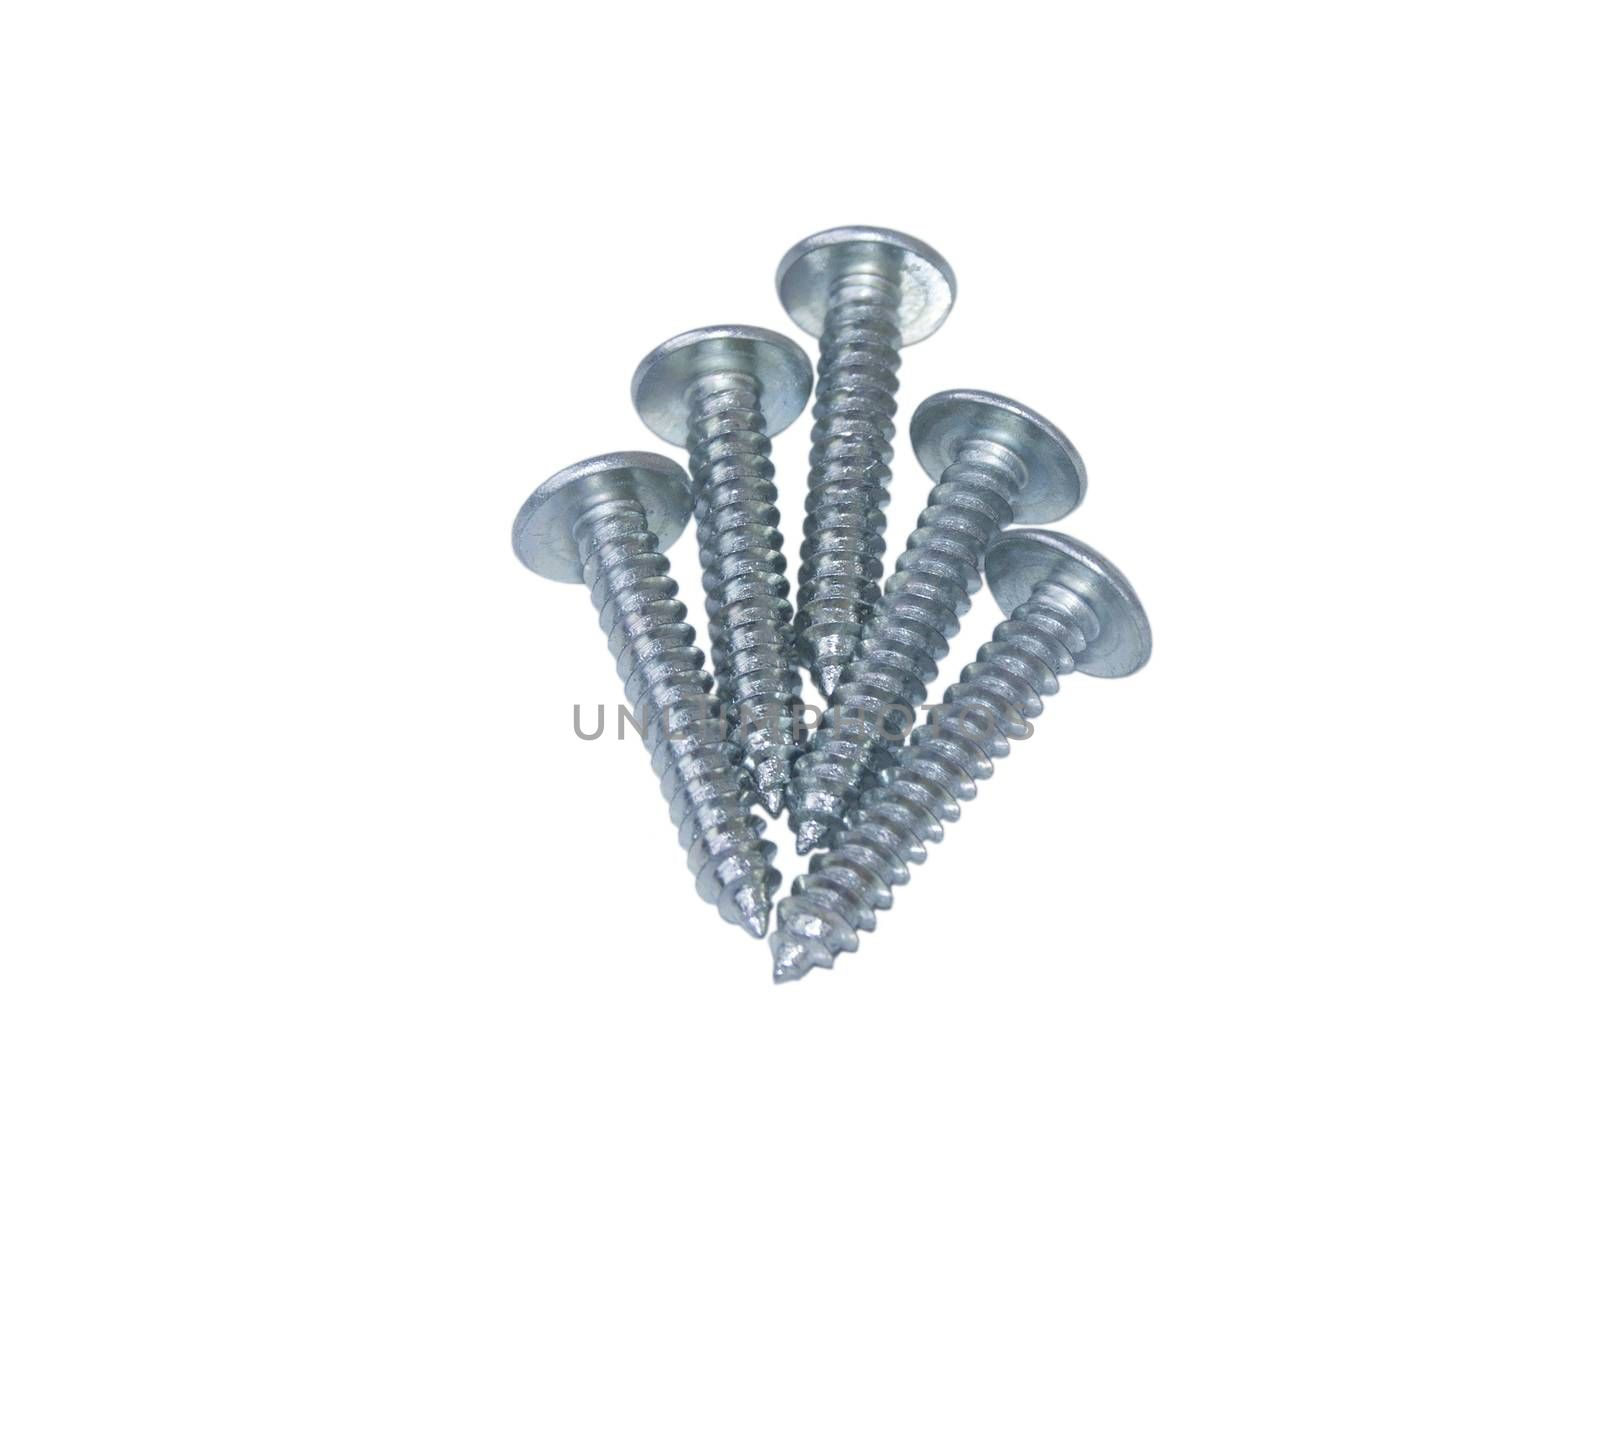 screws. For your commercial and editorial use